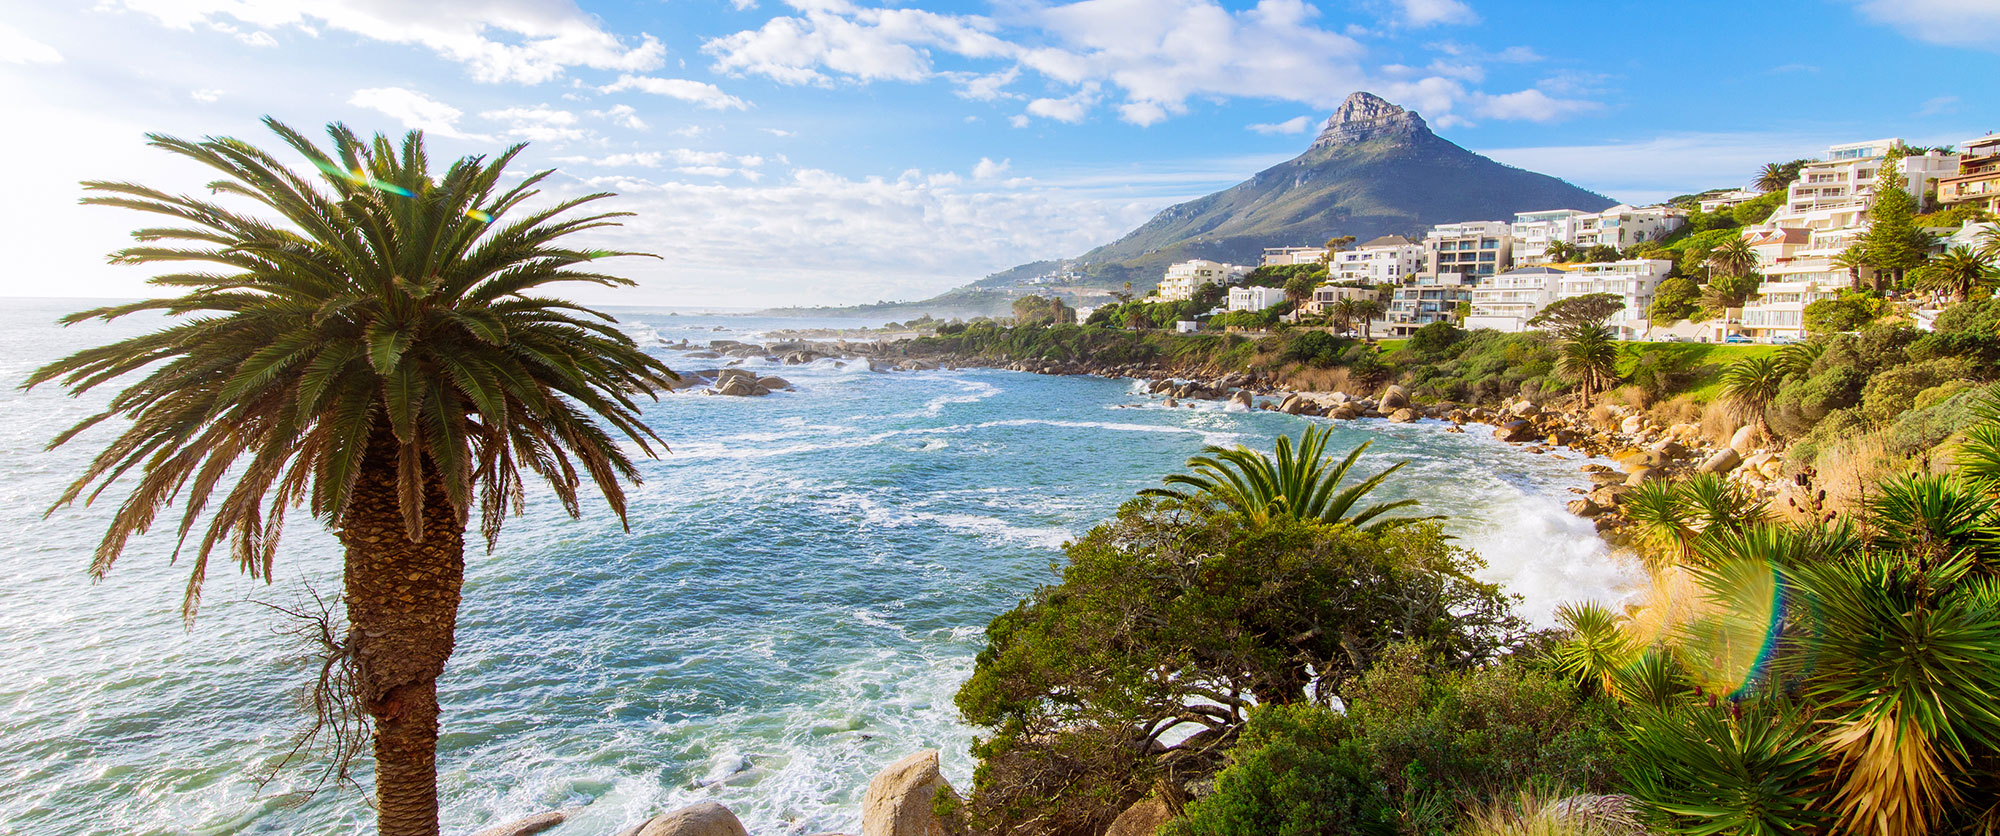 South Africa: Luxury Safari and Cape Town Package - Private Luxury Touring in Cape Town